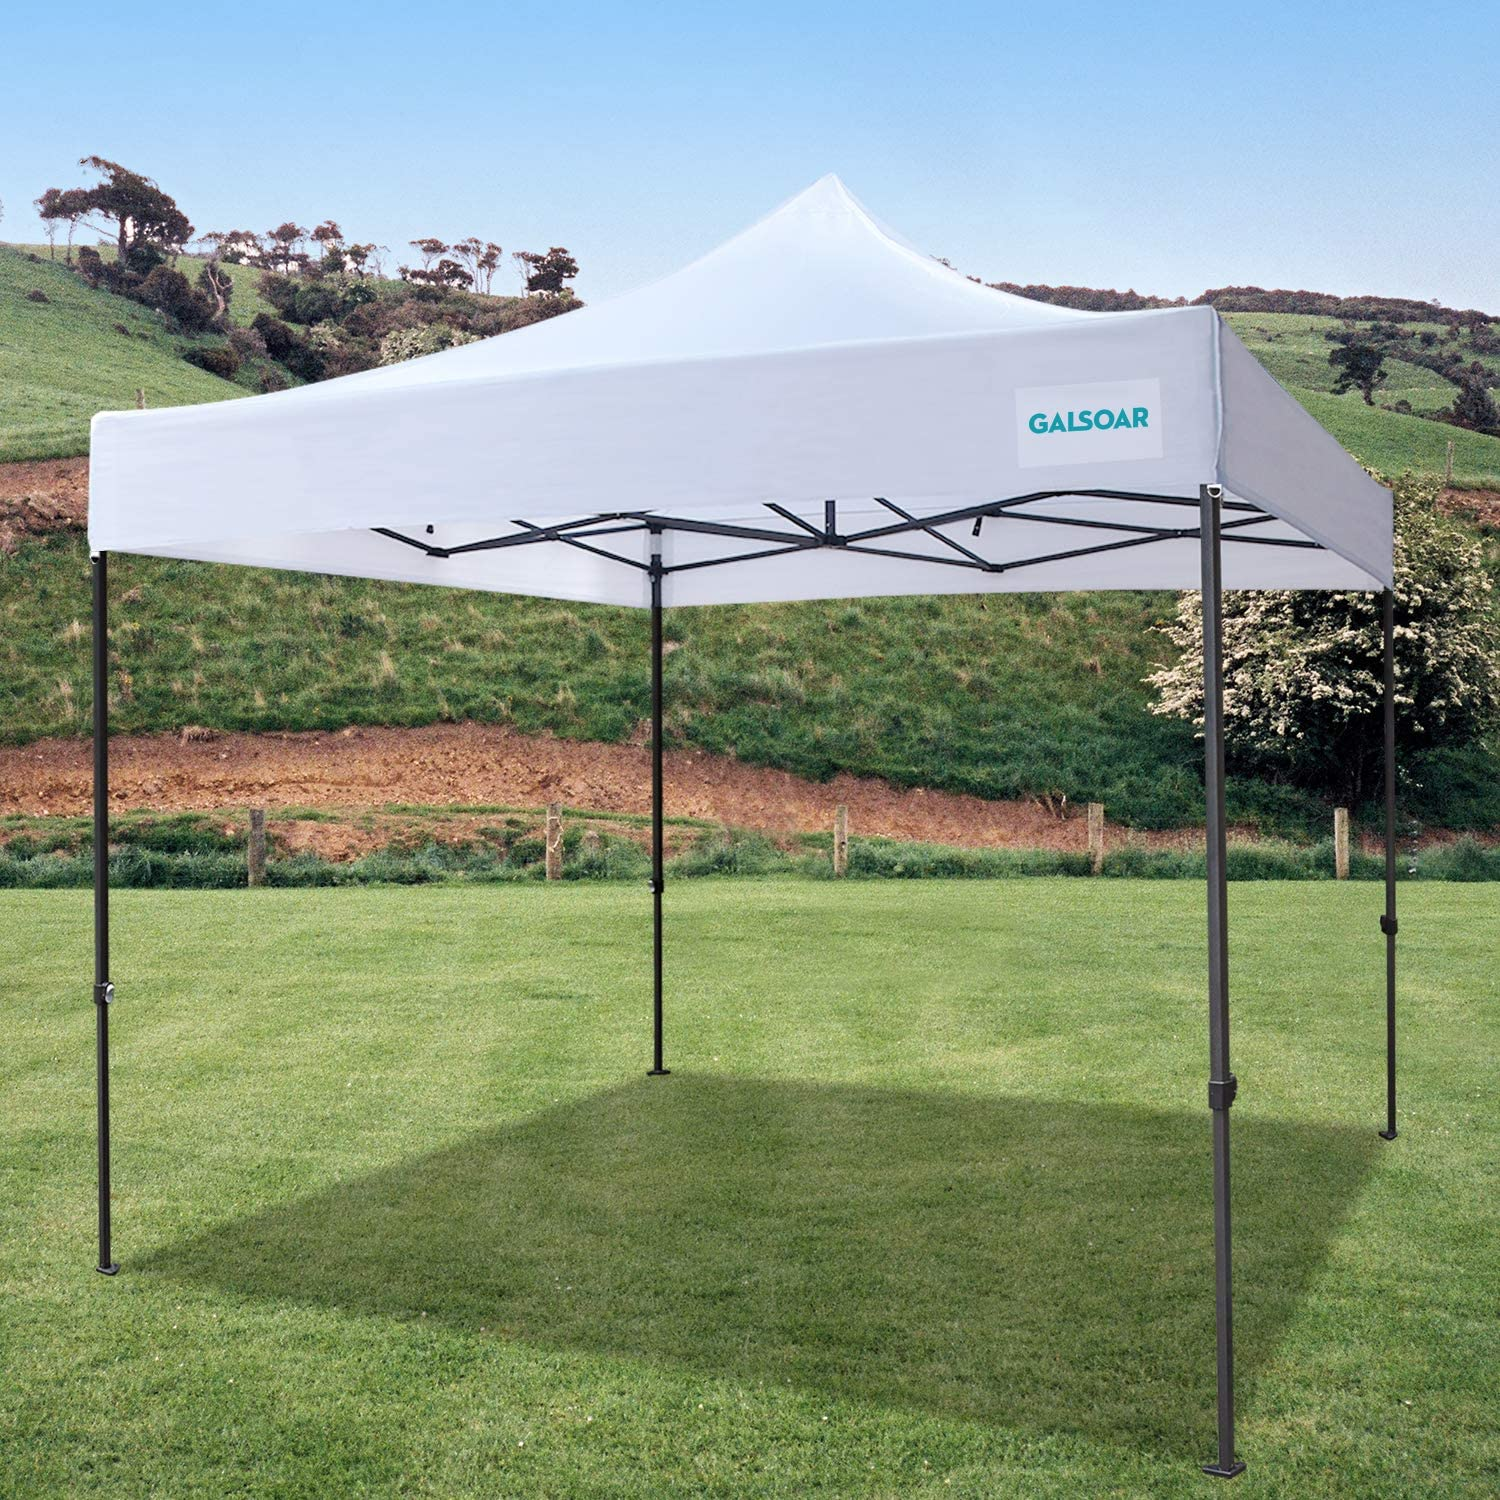 Galsoar Pop Up Canopy 10×10 Commercial Gazebos, Ez Up Canopy Tent Instant Shelter with Roller Bag Bonus 4 Weight Bags, Suitable for Party, Picnics, Market Stall, White